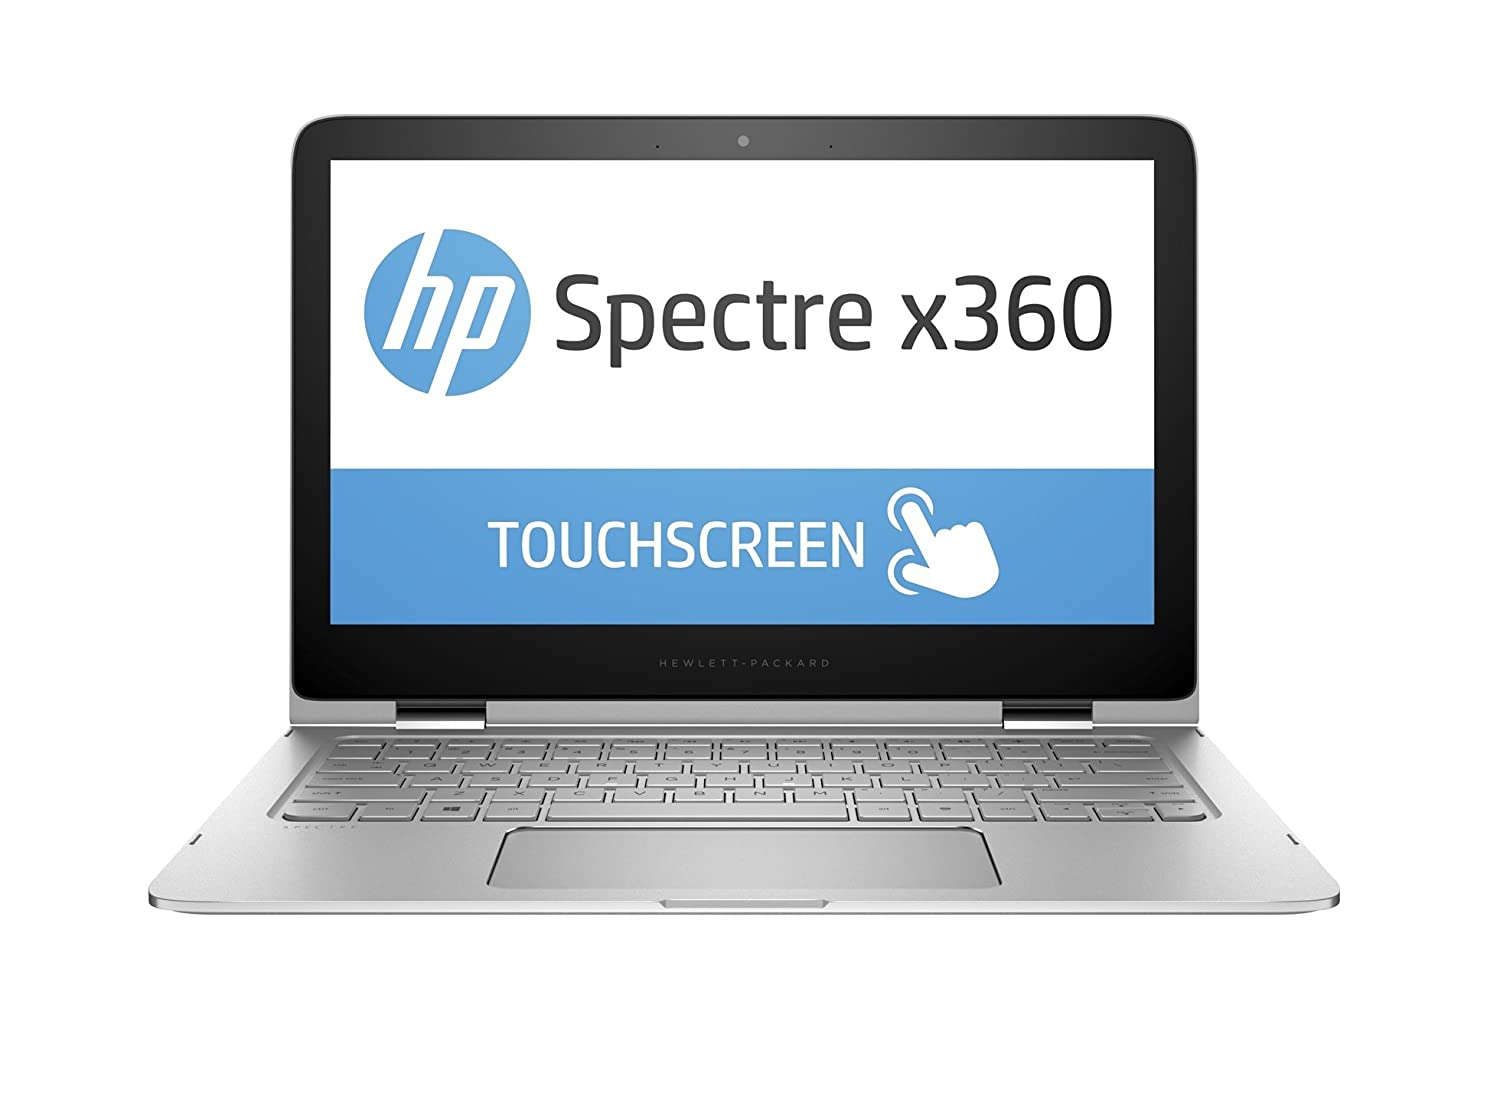 HP Spectre X360 Black Friday Deals 2019